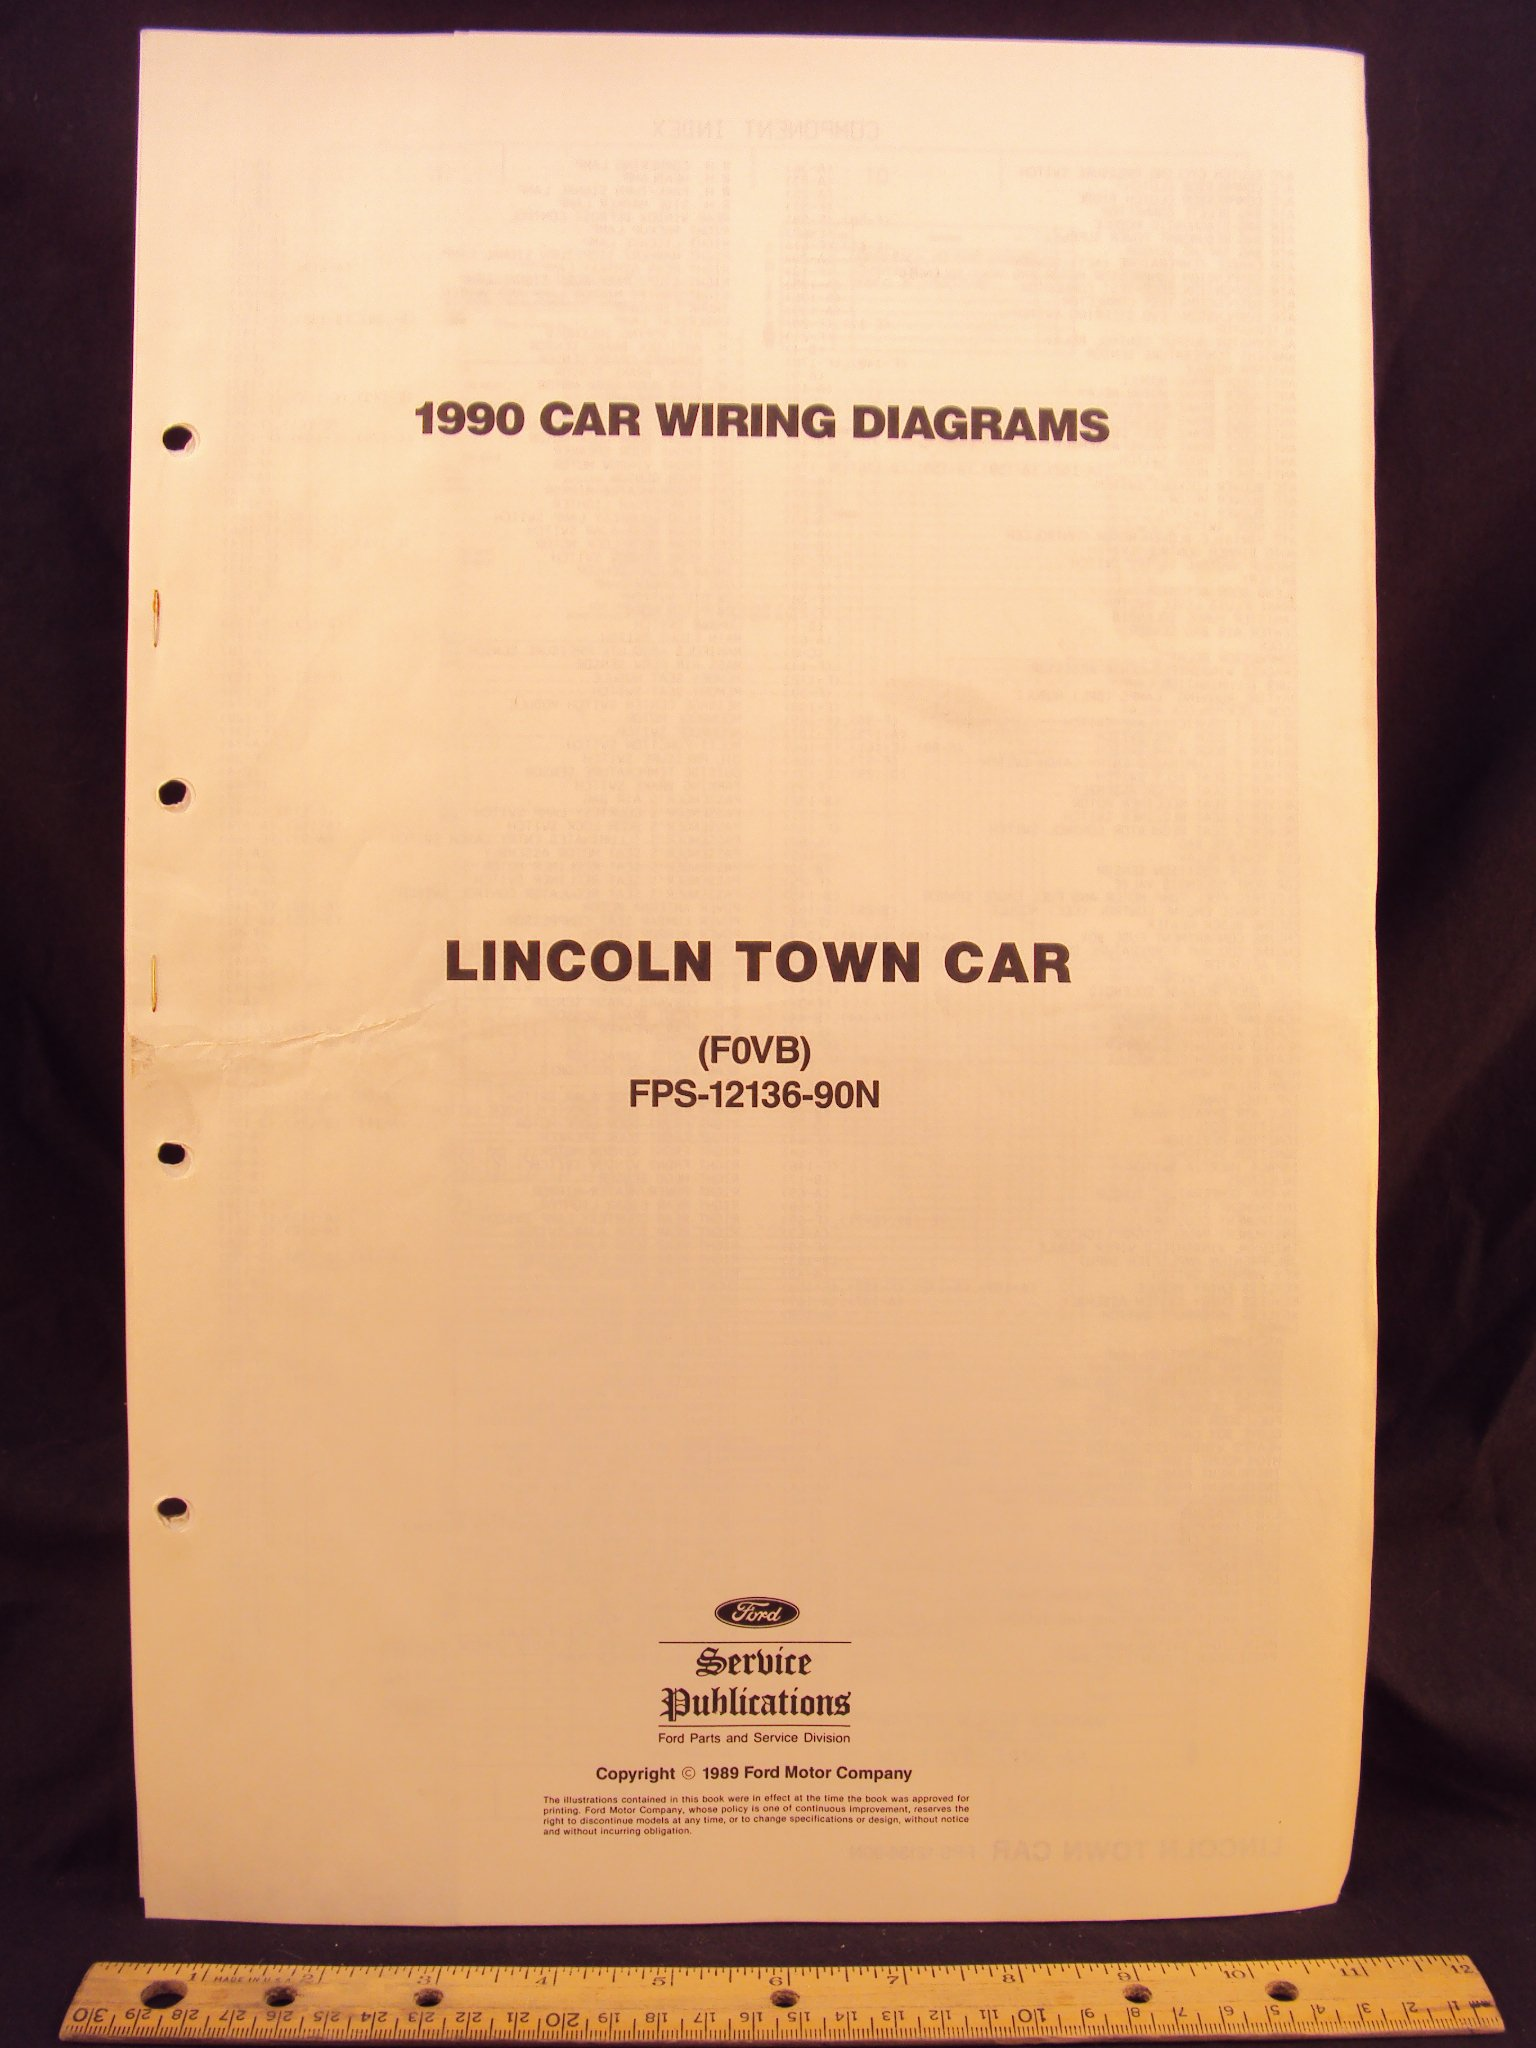 1990 lincoln town car electrical wiring diagrams / schematics loose leaf –  january 1, 1989